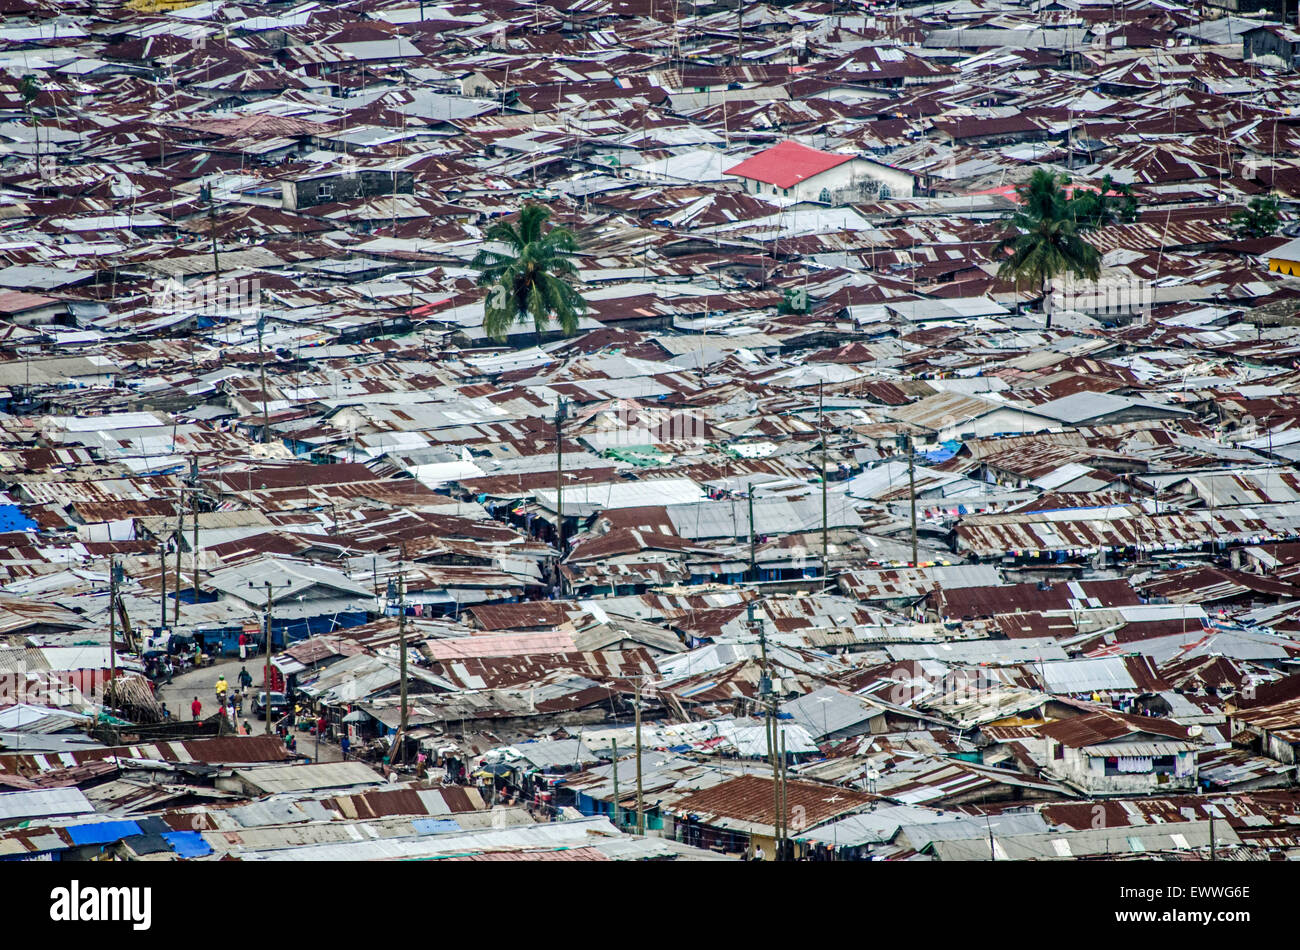 West Point, Monrovia, Liberia. Imagen De Stock